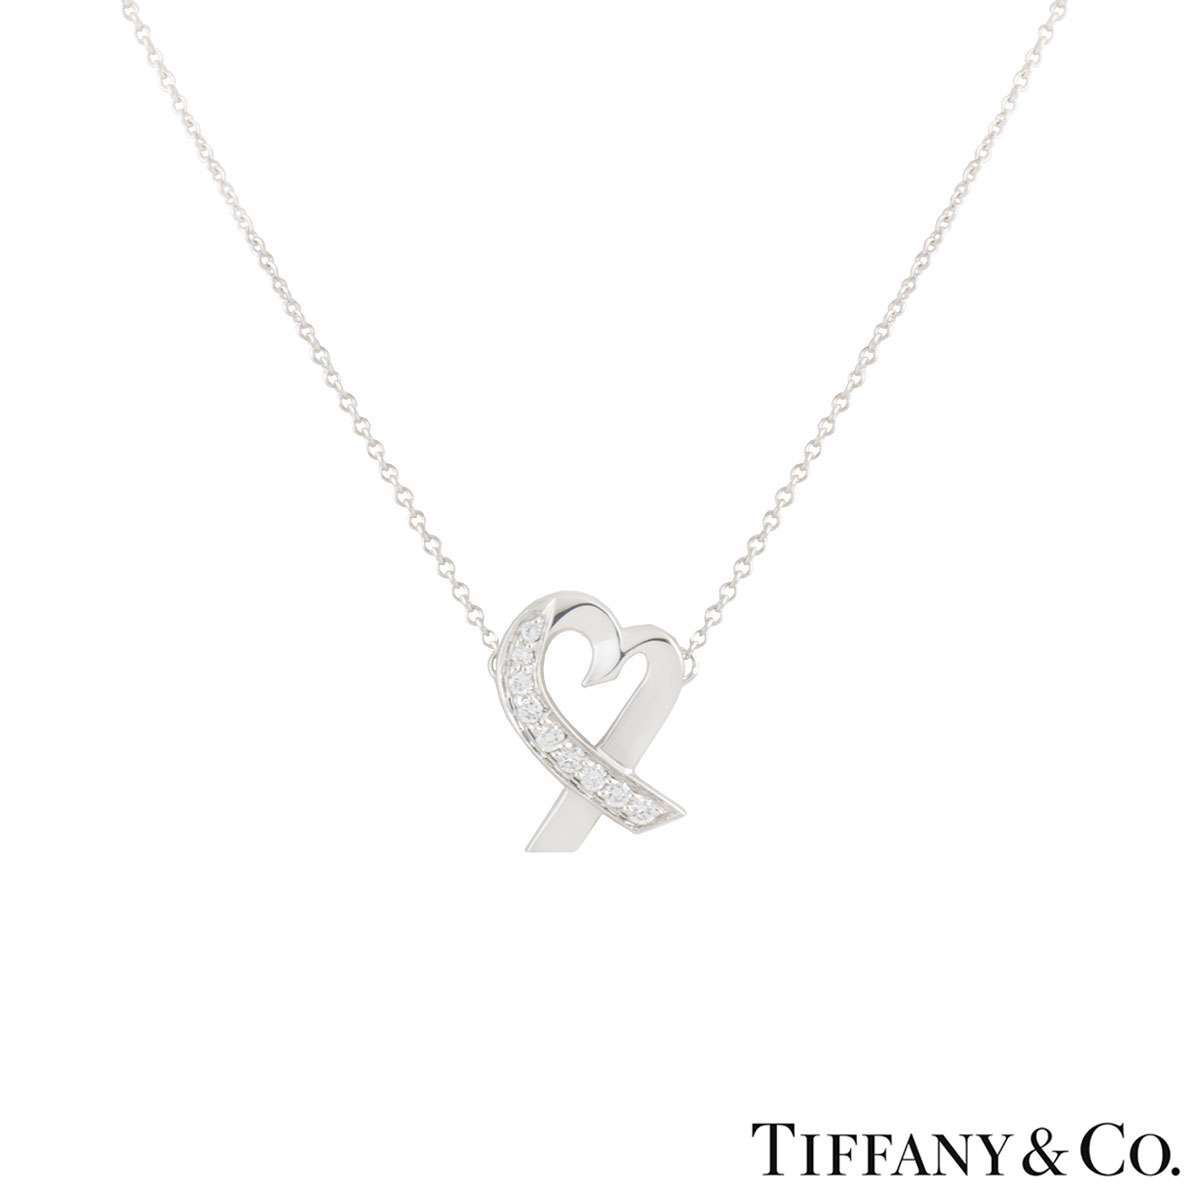 Tiffany & Co. White Gold Paloma Picasso Diamond Pendant